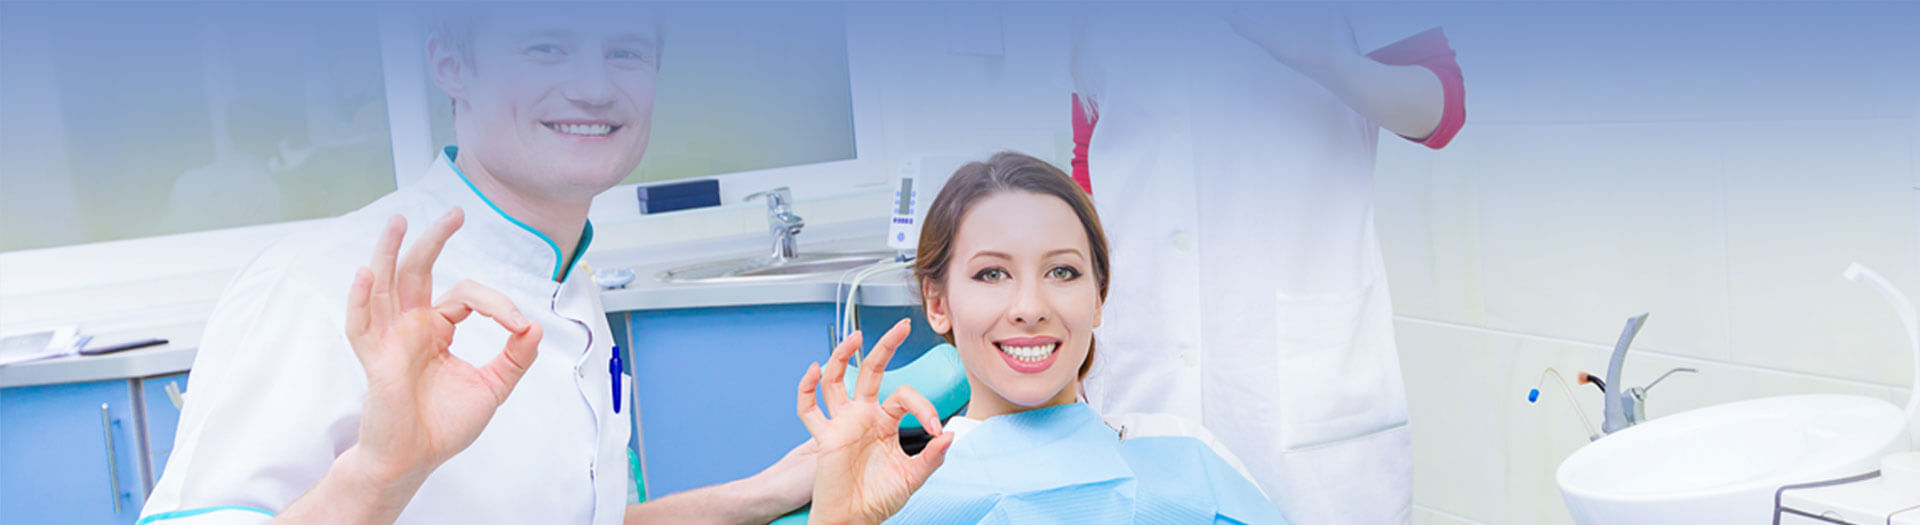 Cropped image of dentist, patient and assisting showing hand gesture